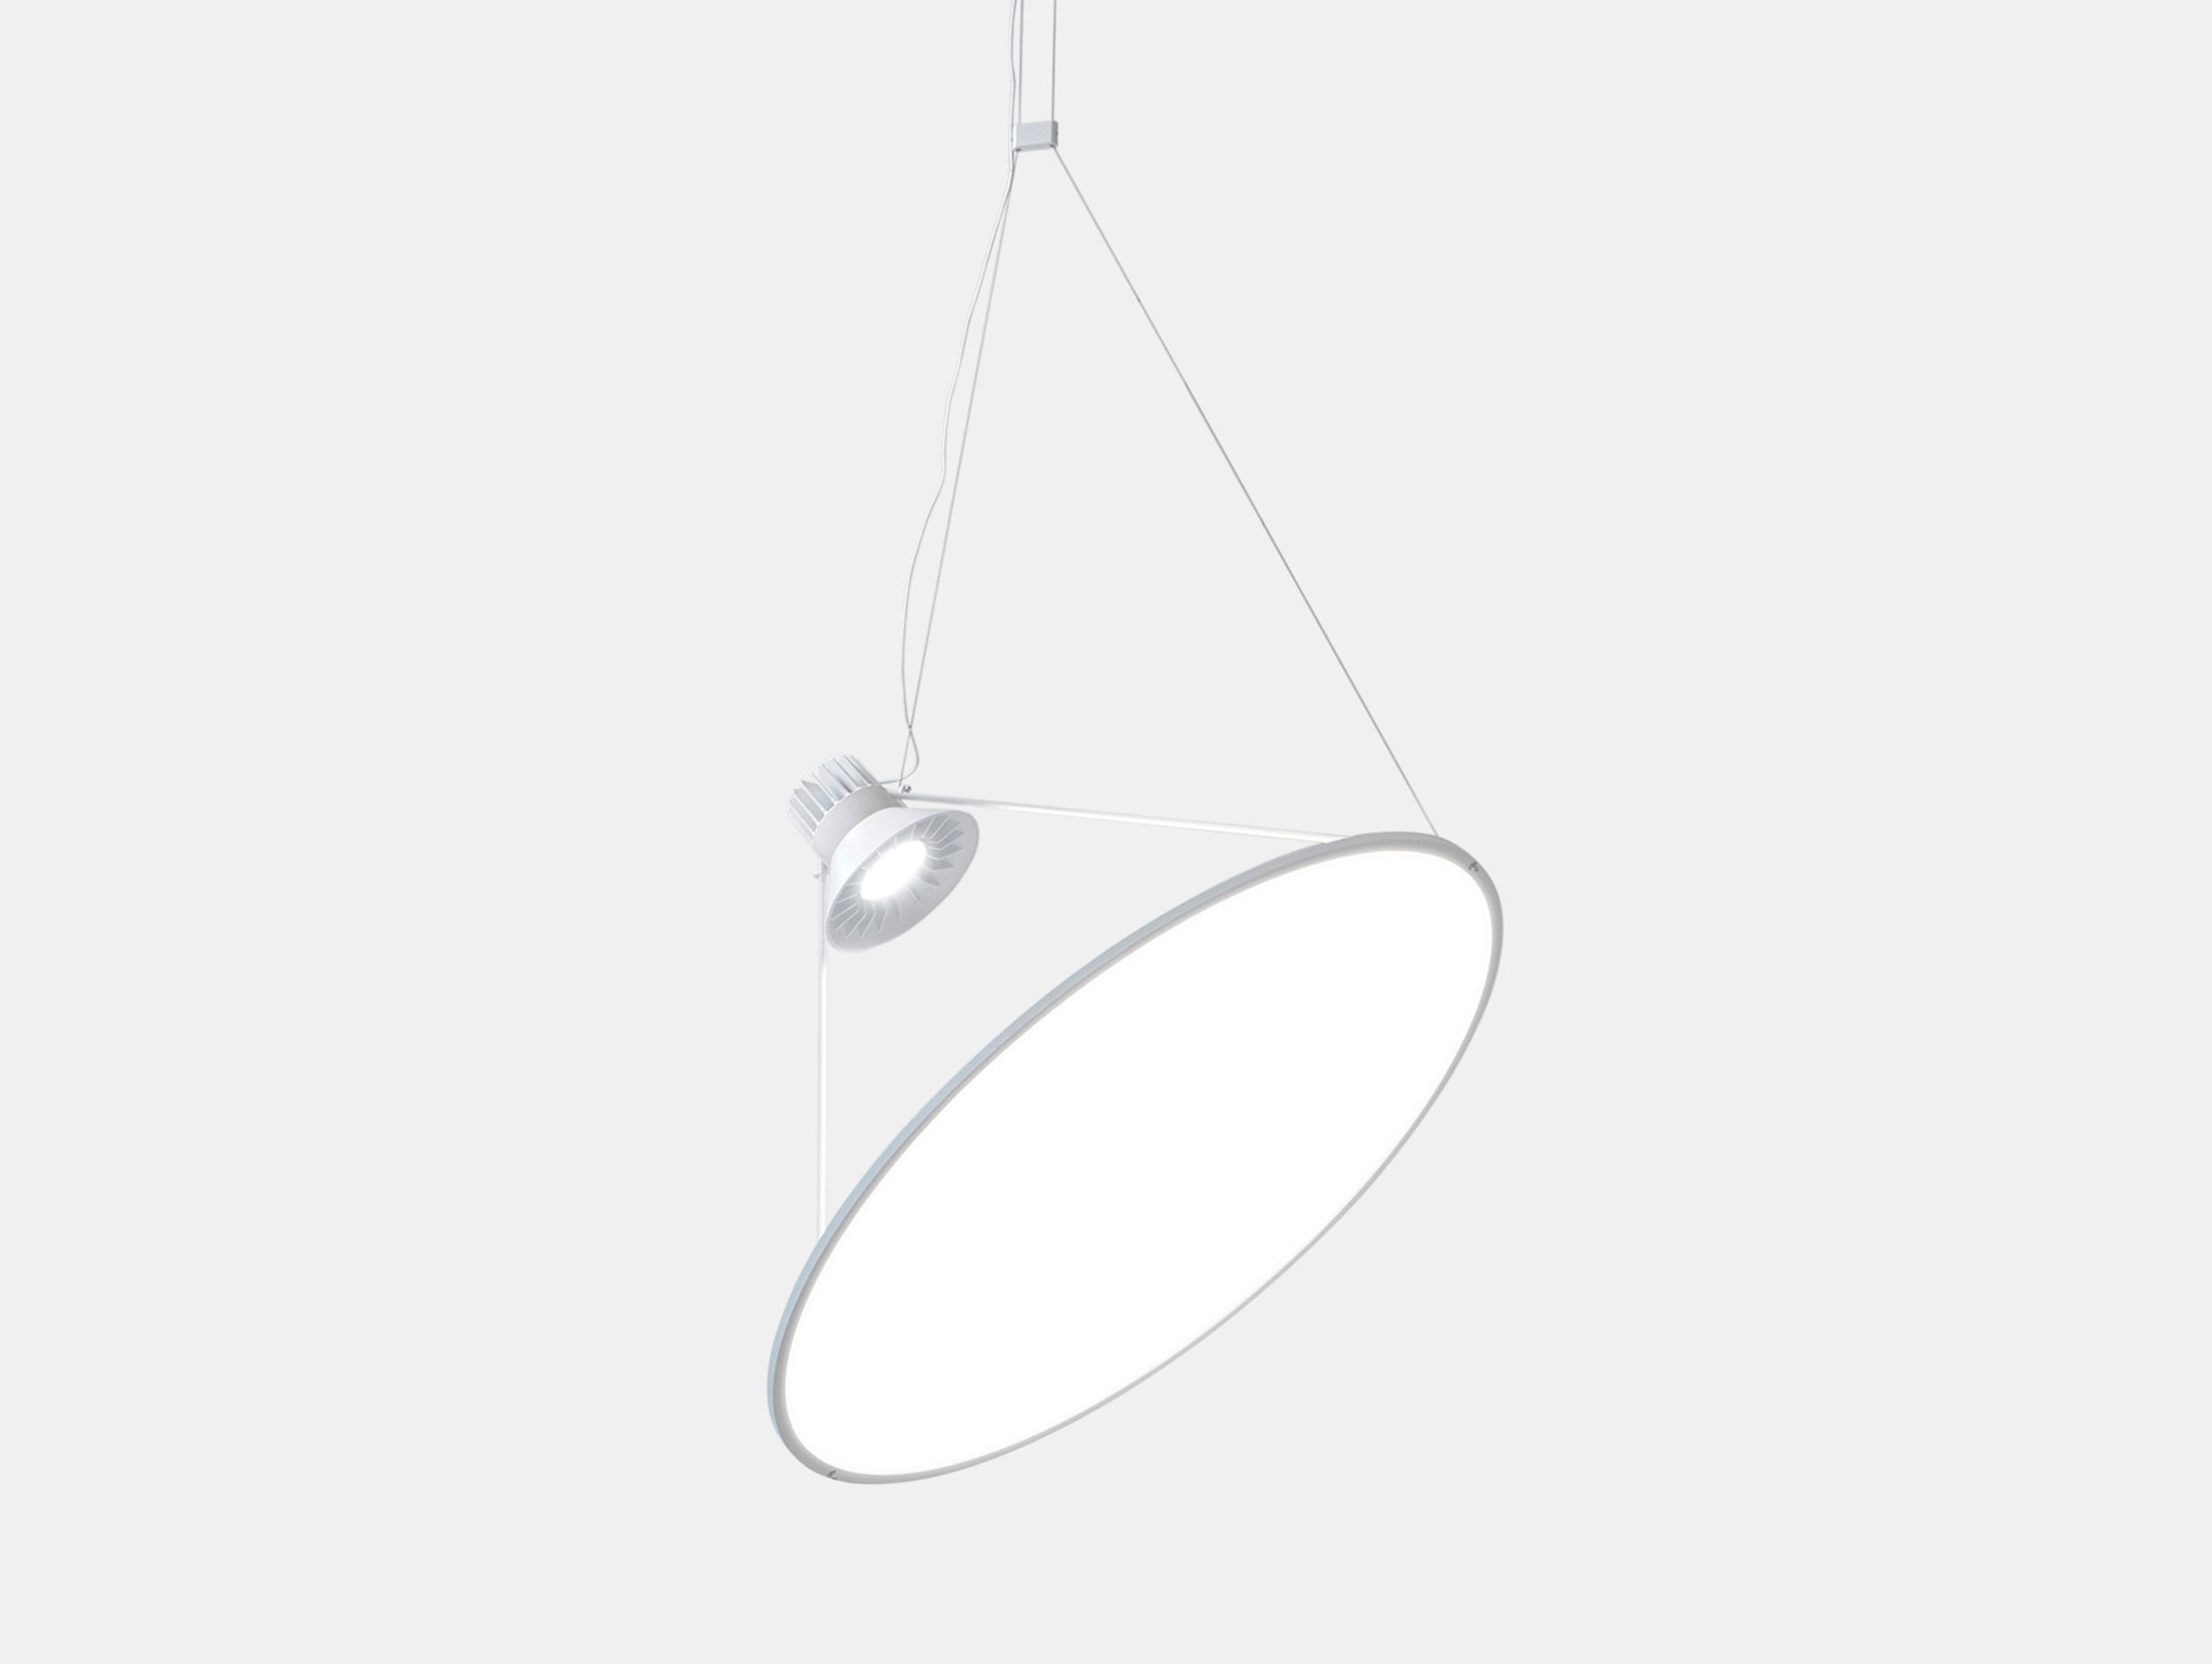 Amisol Suspension Light image 1